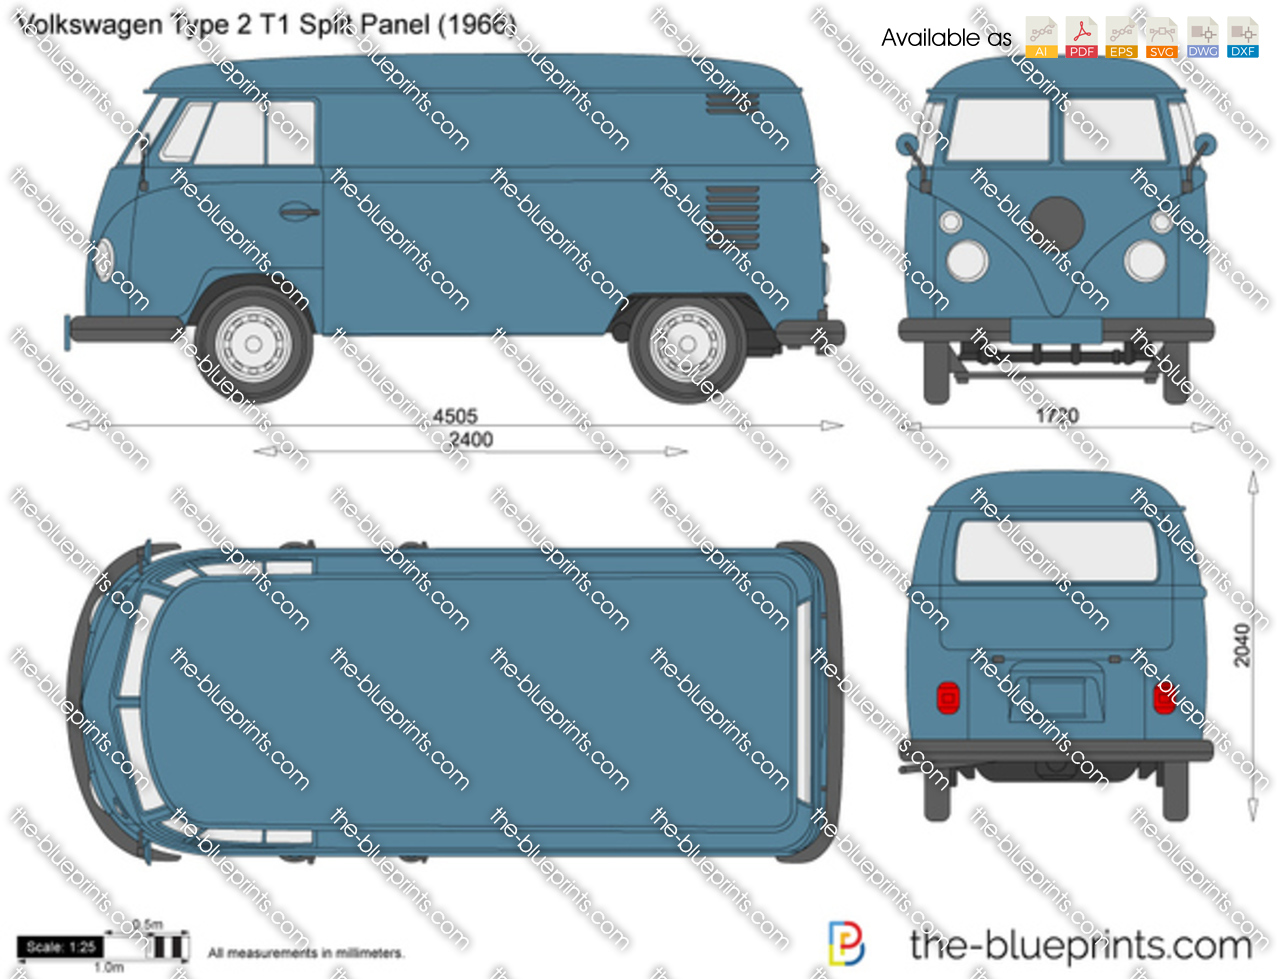 Volkswagen Type 2 T1 Split Panel 1960